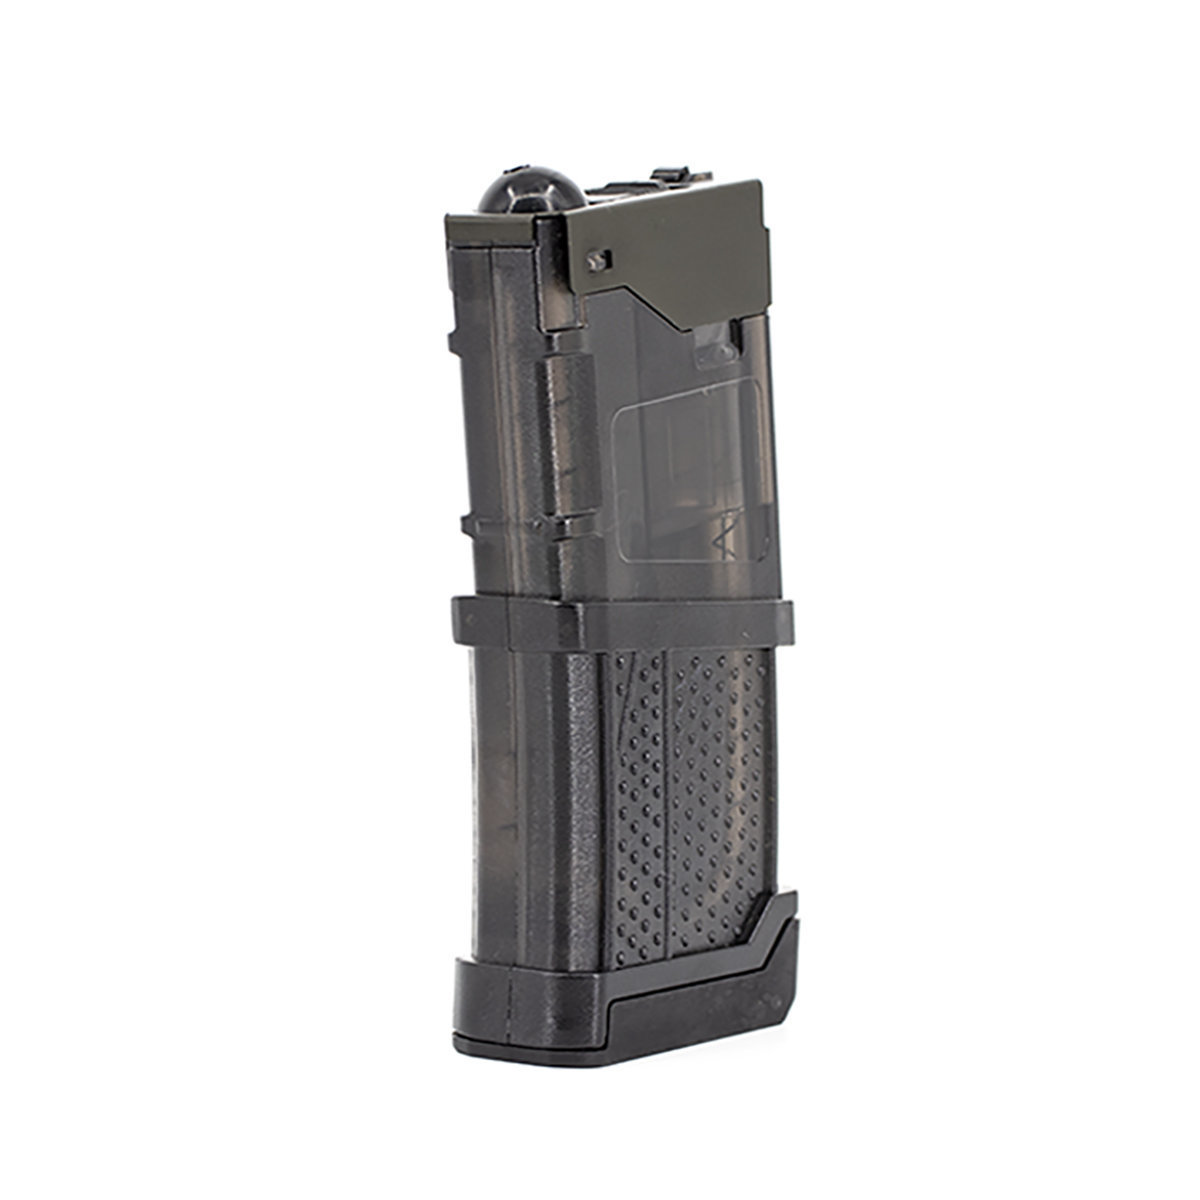 View larger image of First Strike T15 11 Round Compact Paintball Gun Magazine - Black